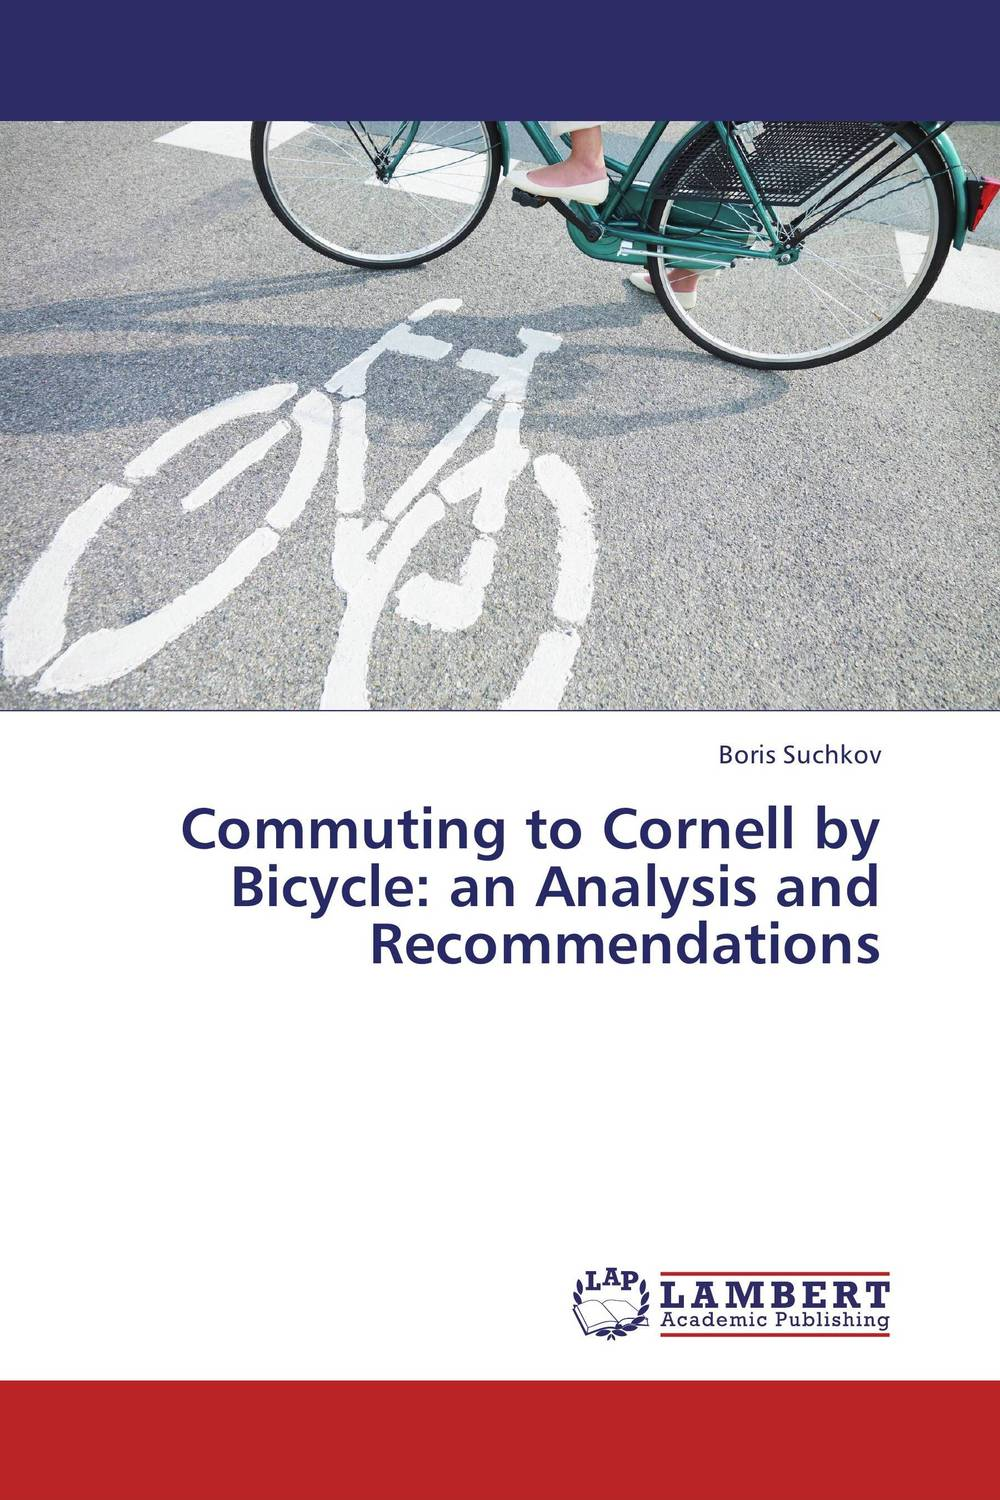 Commuting to Cornell by Bicycle: an Analysis and Recommendations eve teasing in university campus